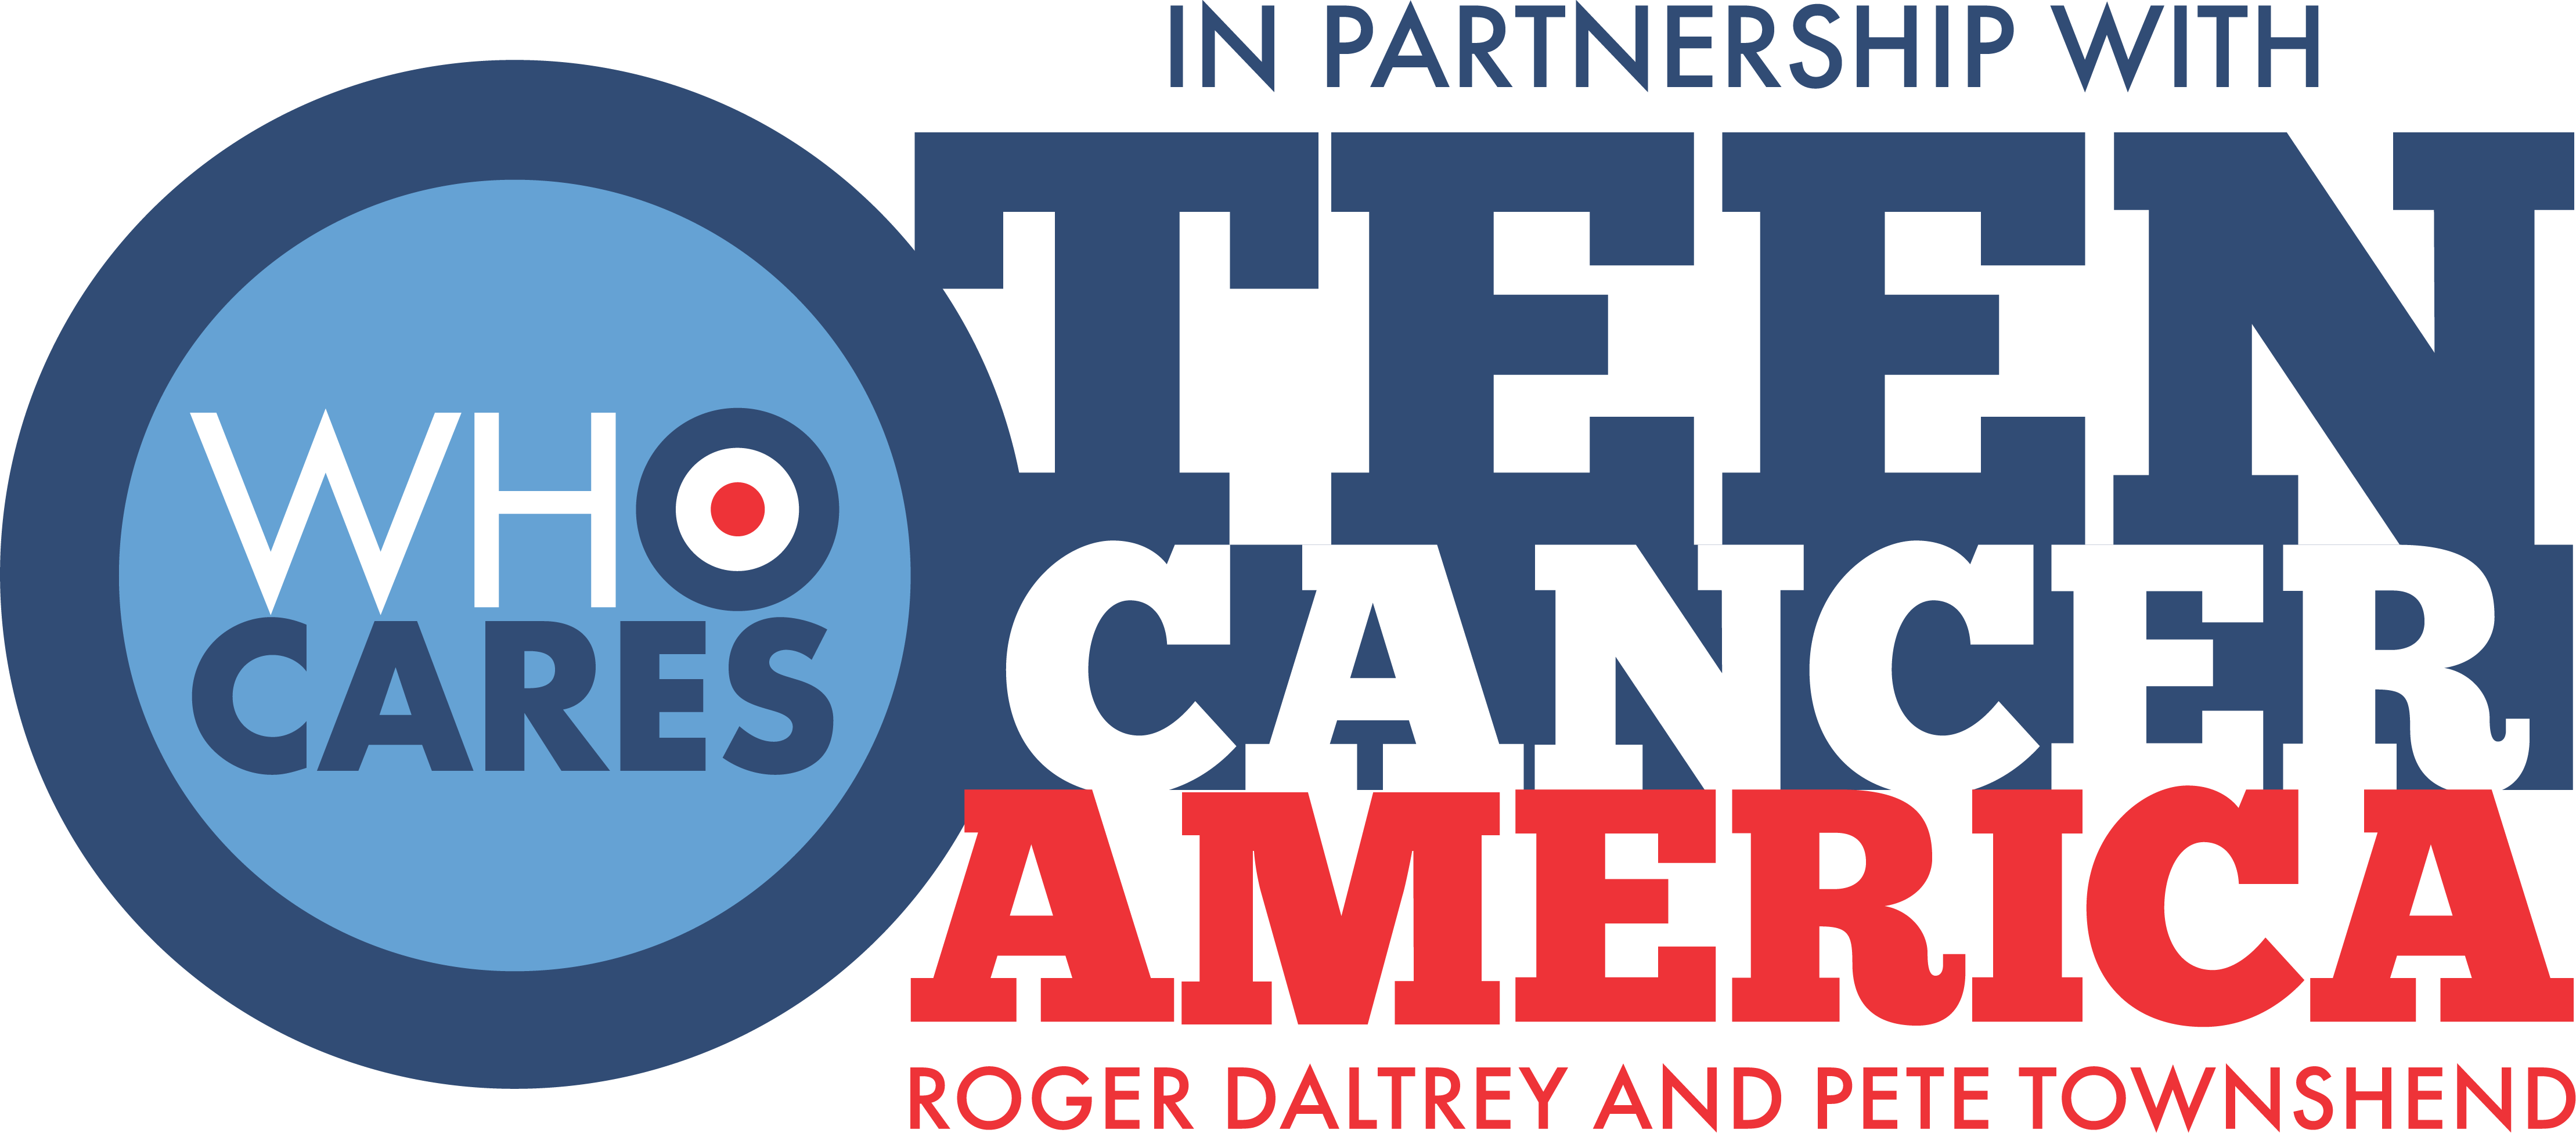 Teen Cancer America Partnership Logo